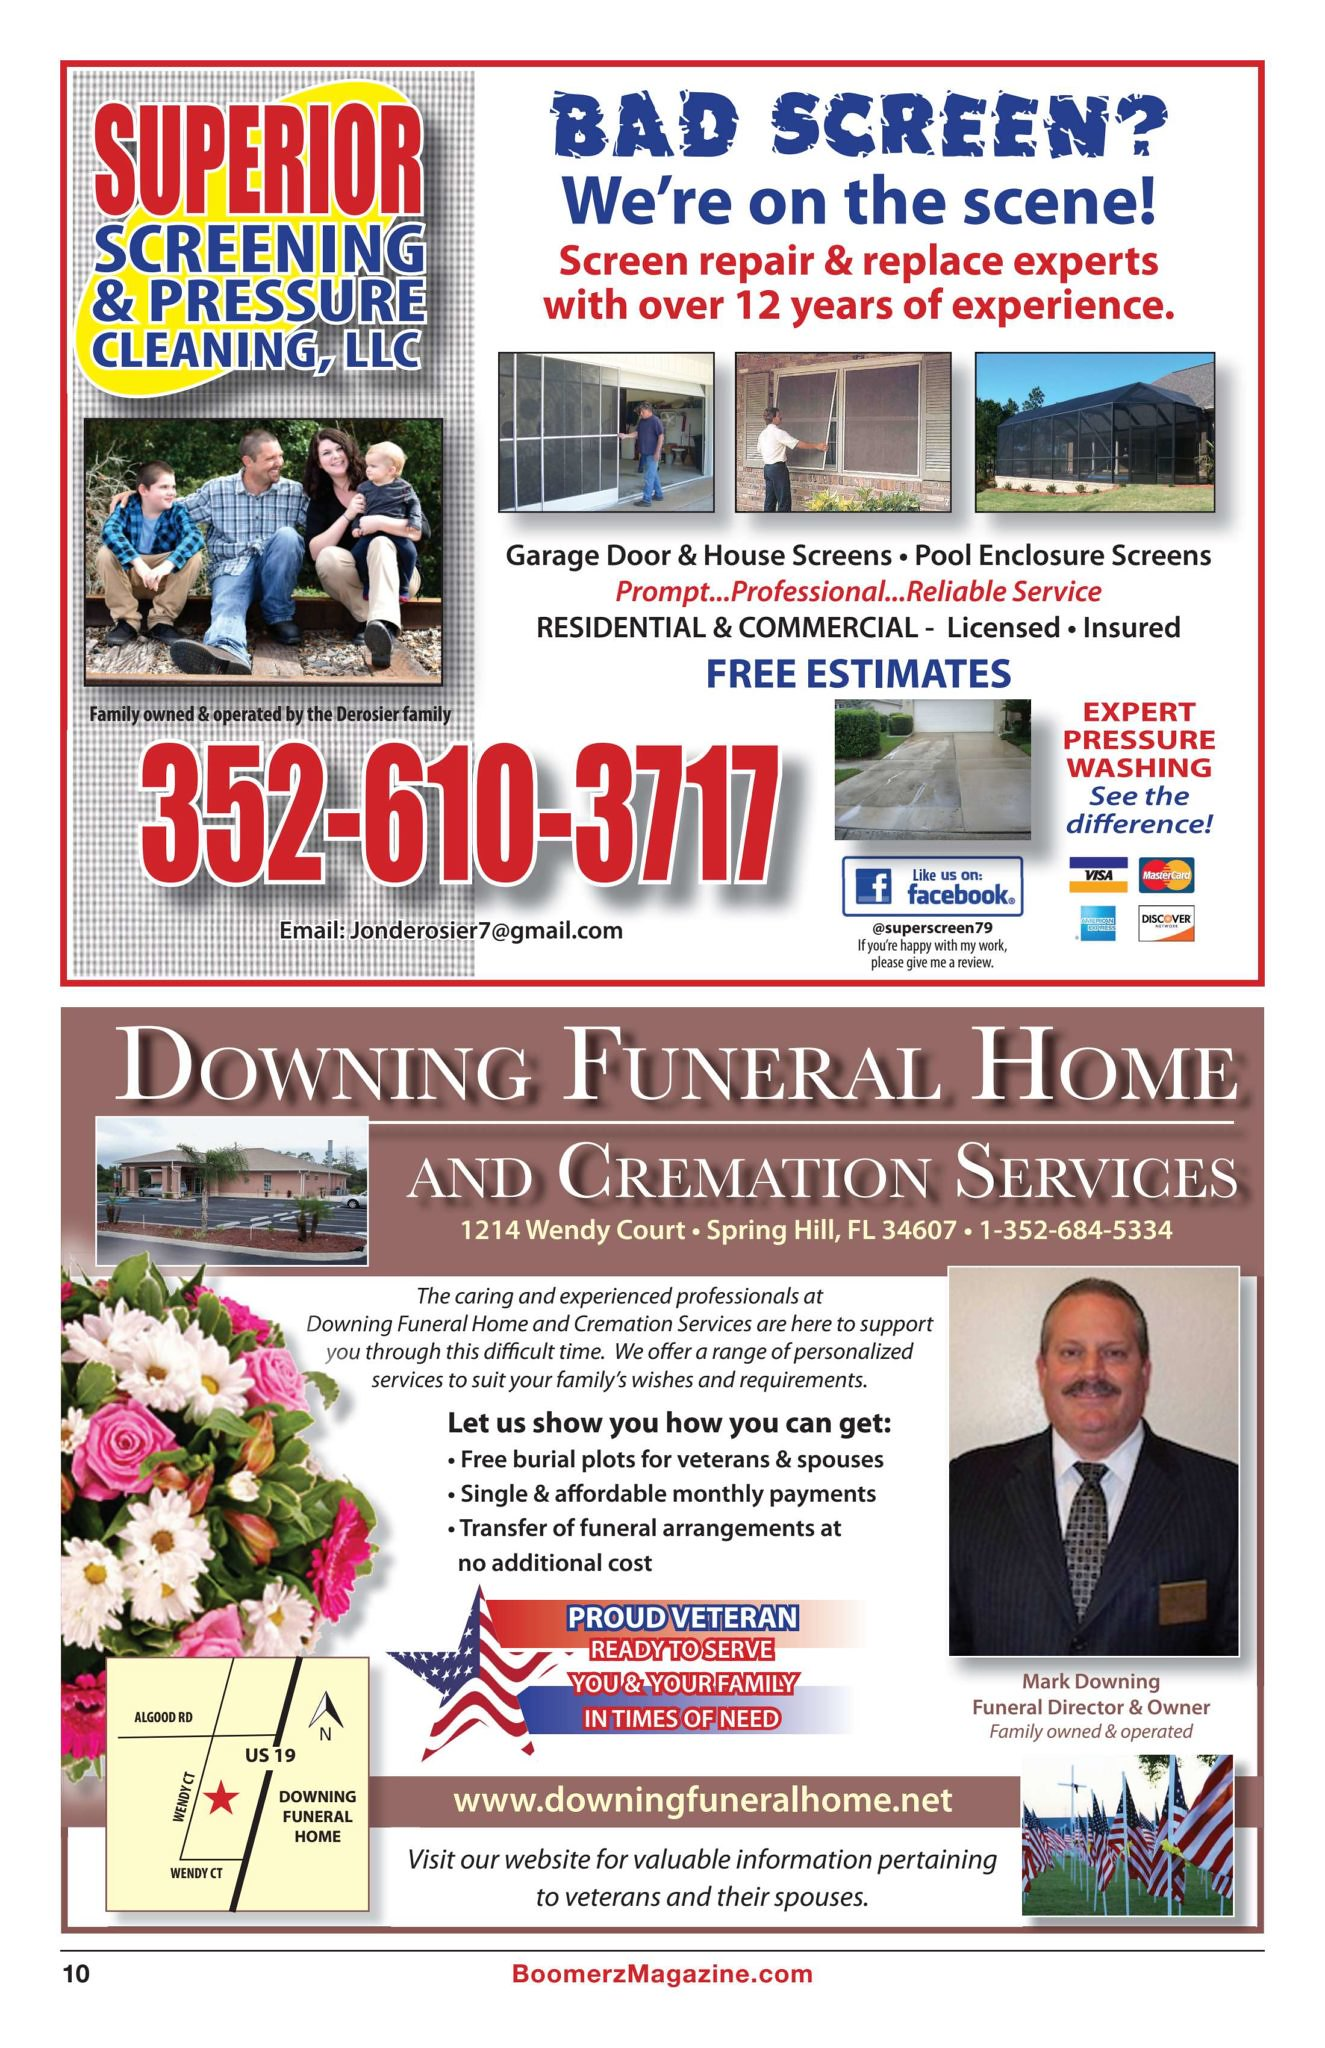 Boomerz Magazine 2018 November Superior Screening Downing Funeral Homes